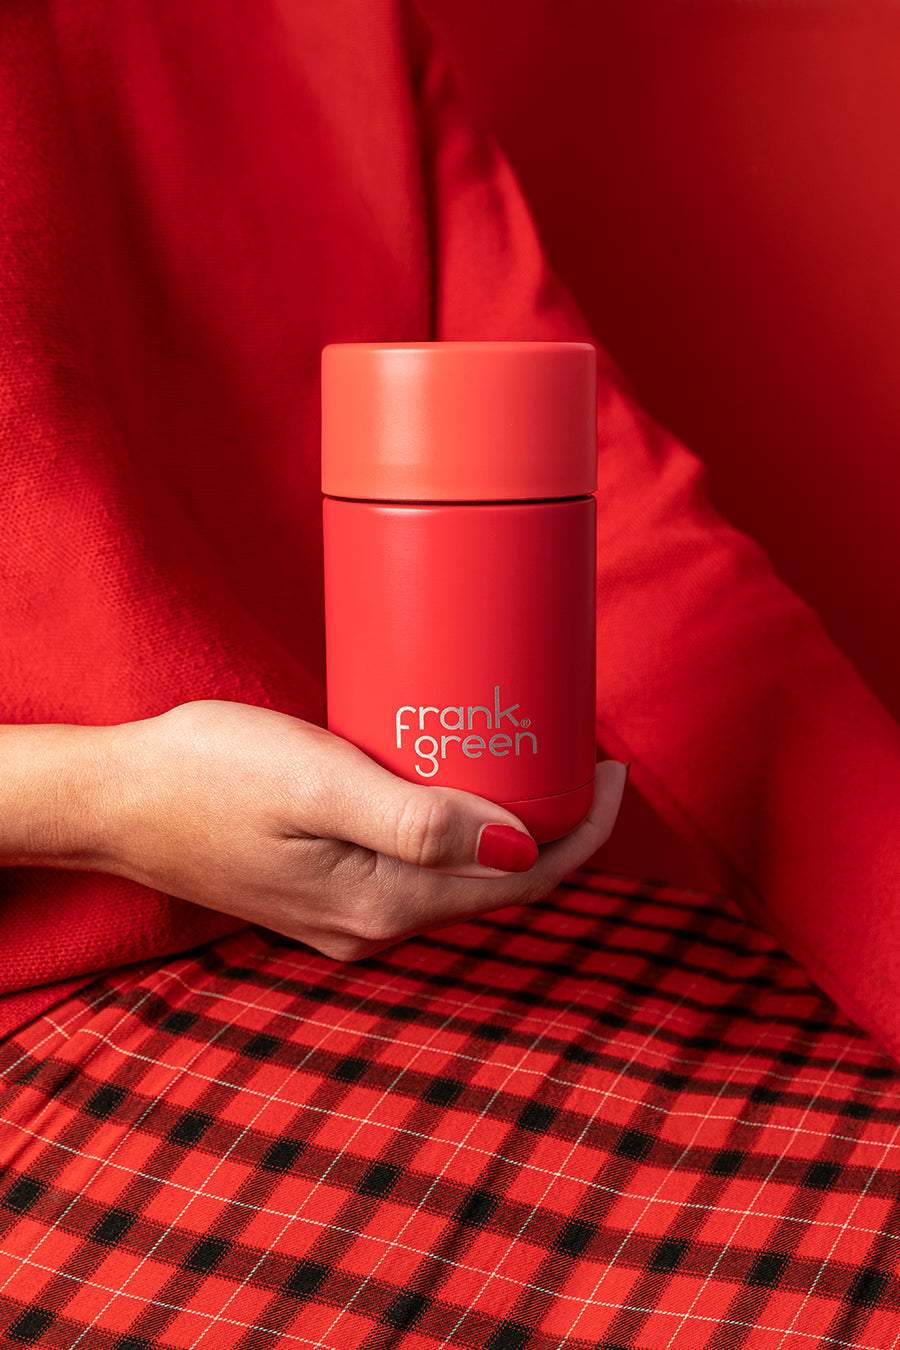 Frank Green 10oz/295ml Ceramic Reusable Cup - Rouge (Limited Edition)